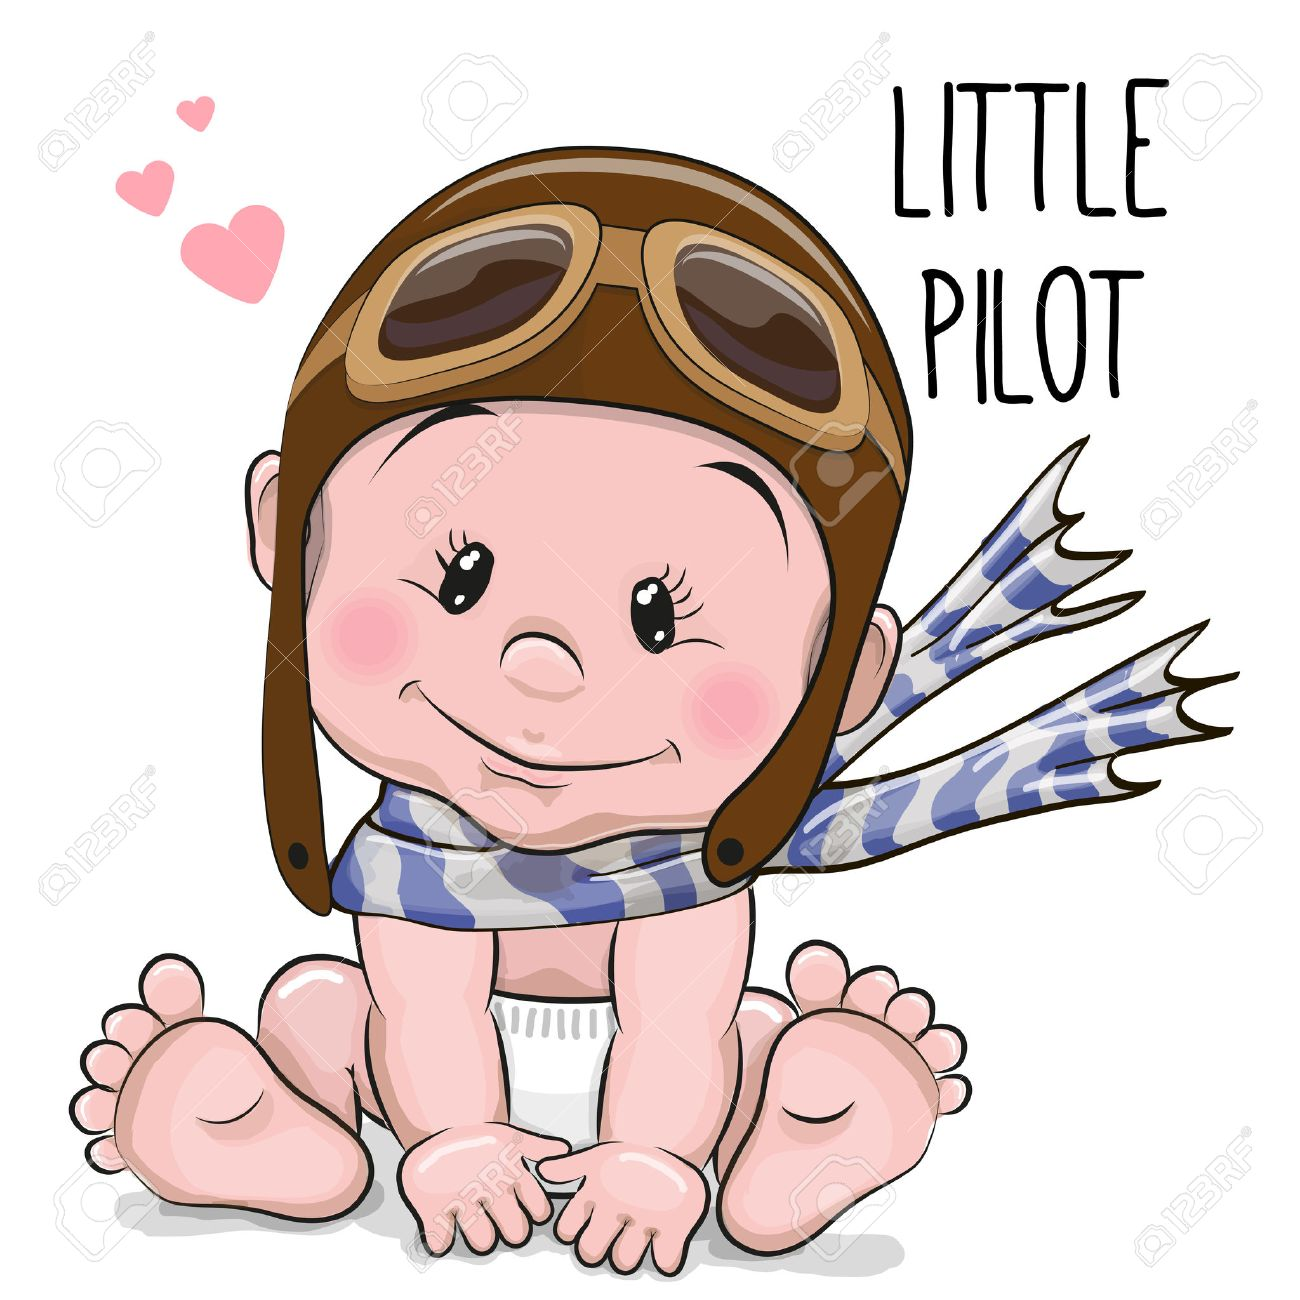 Cute Cartoon Baby boy in a pilot hat and scarf Stock Vector - 44552001